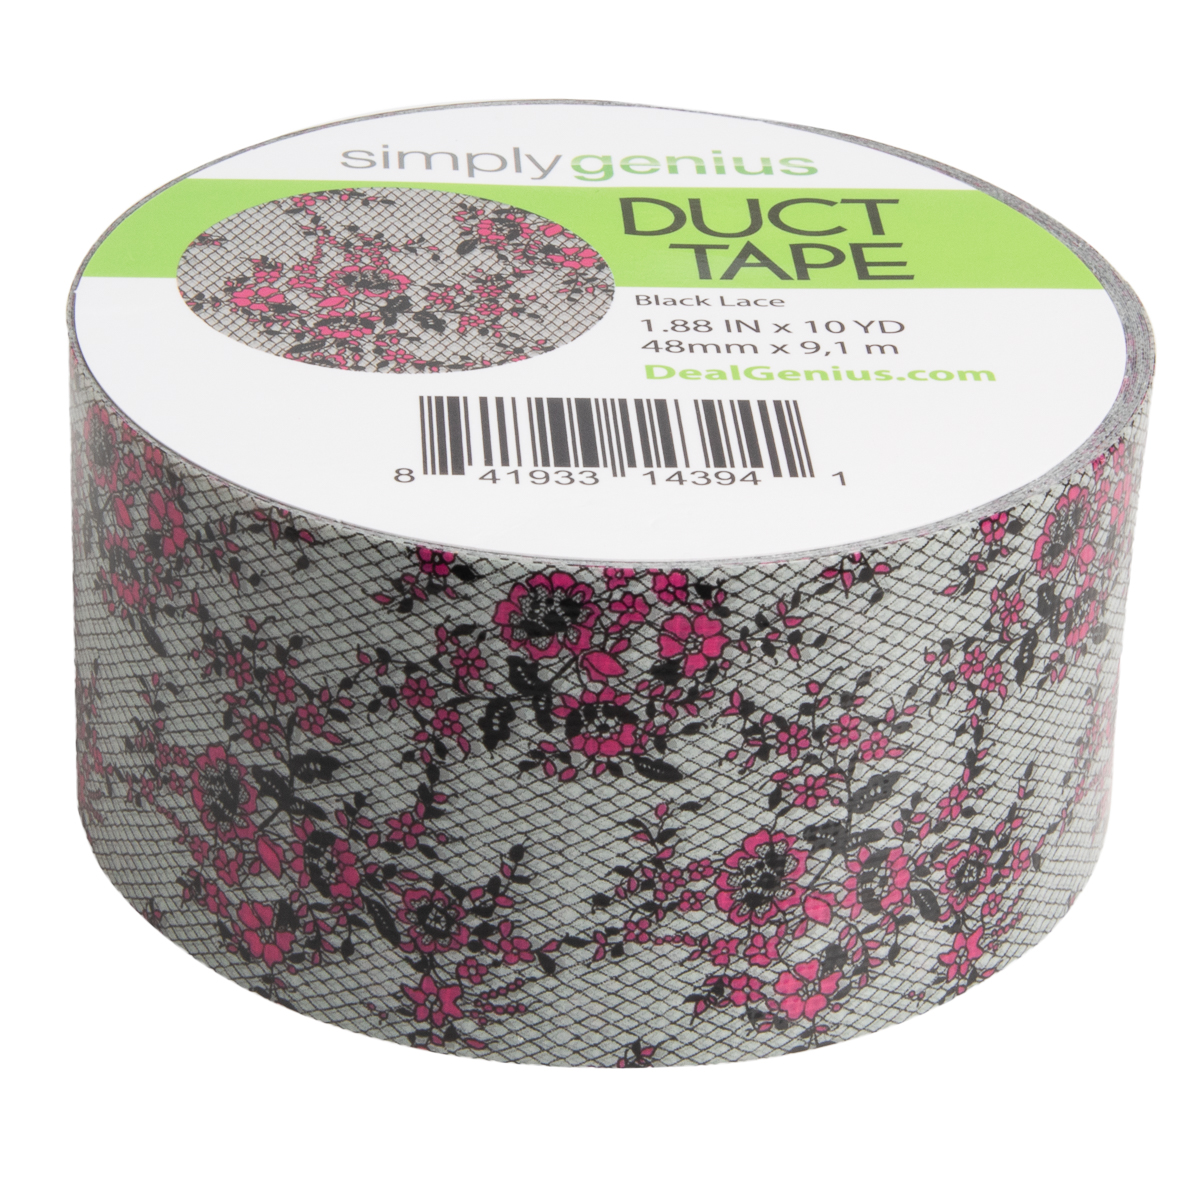 Simply-Genius-Duct-Tape-Roll-Colors-Patterns-Craft-Supplies-Colored-amp-Patterned thumbnail 11